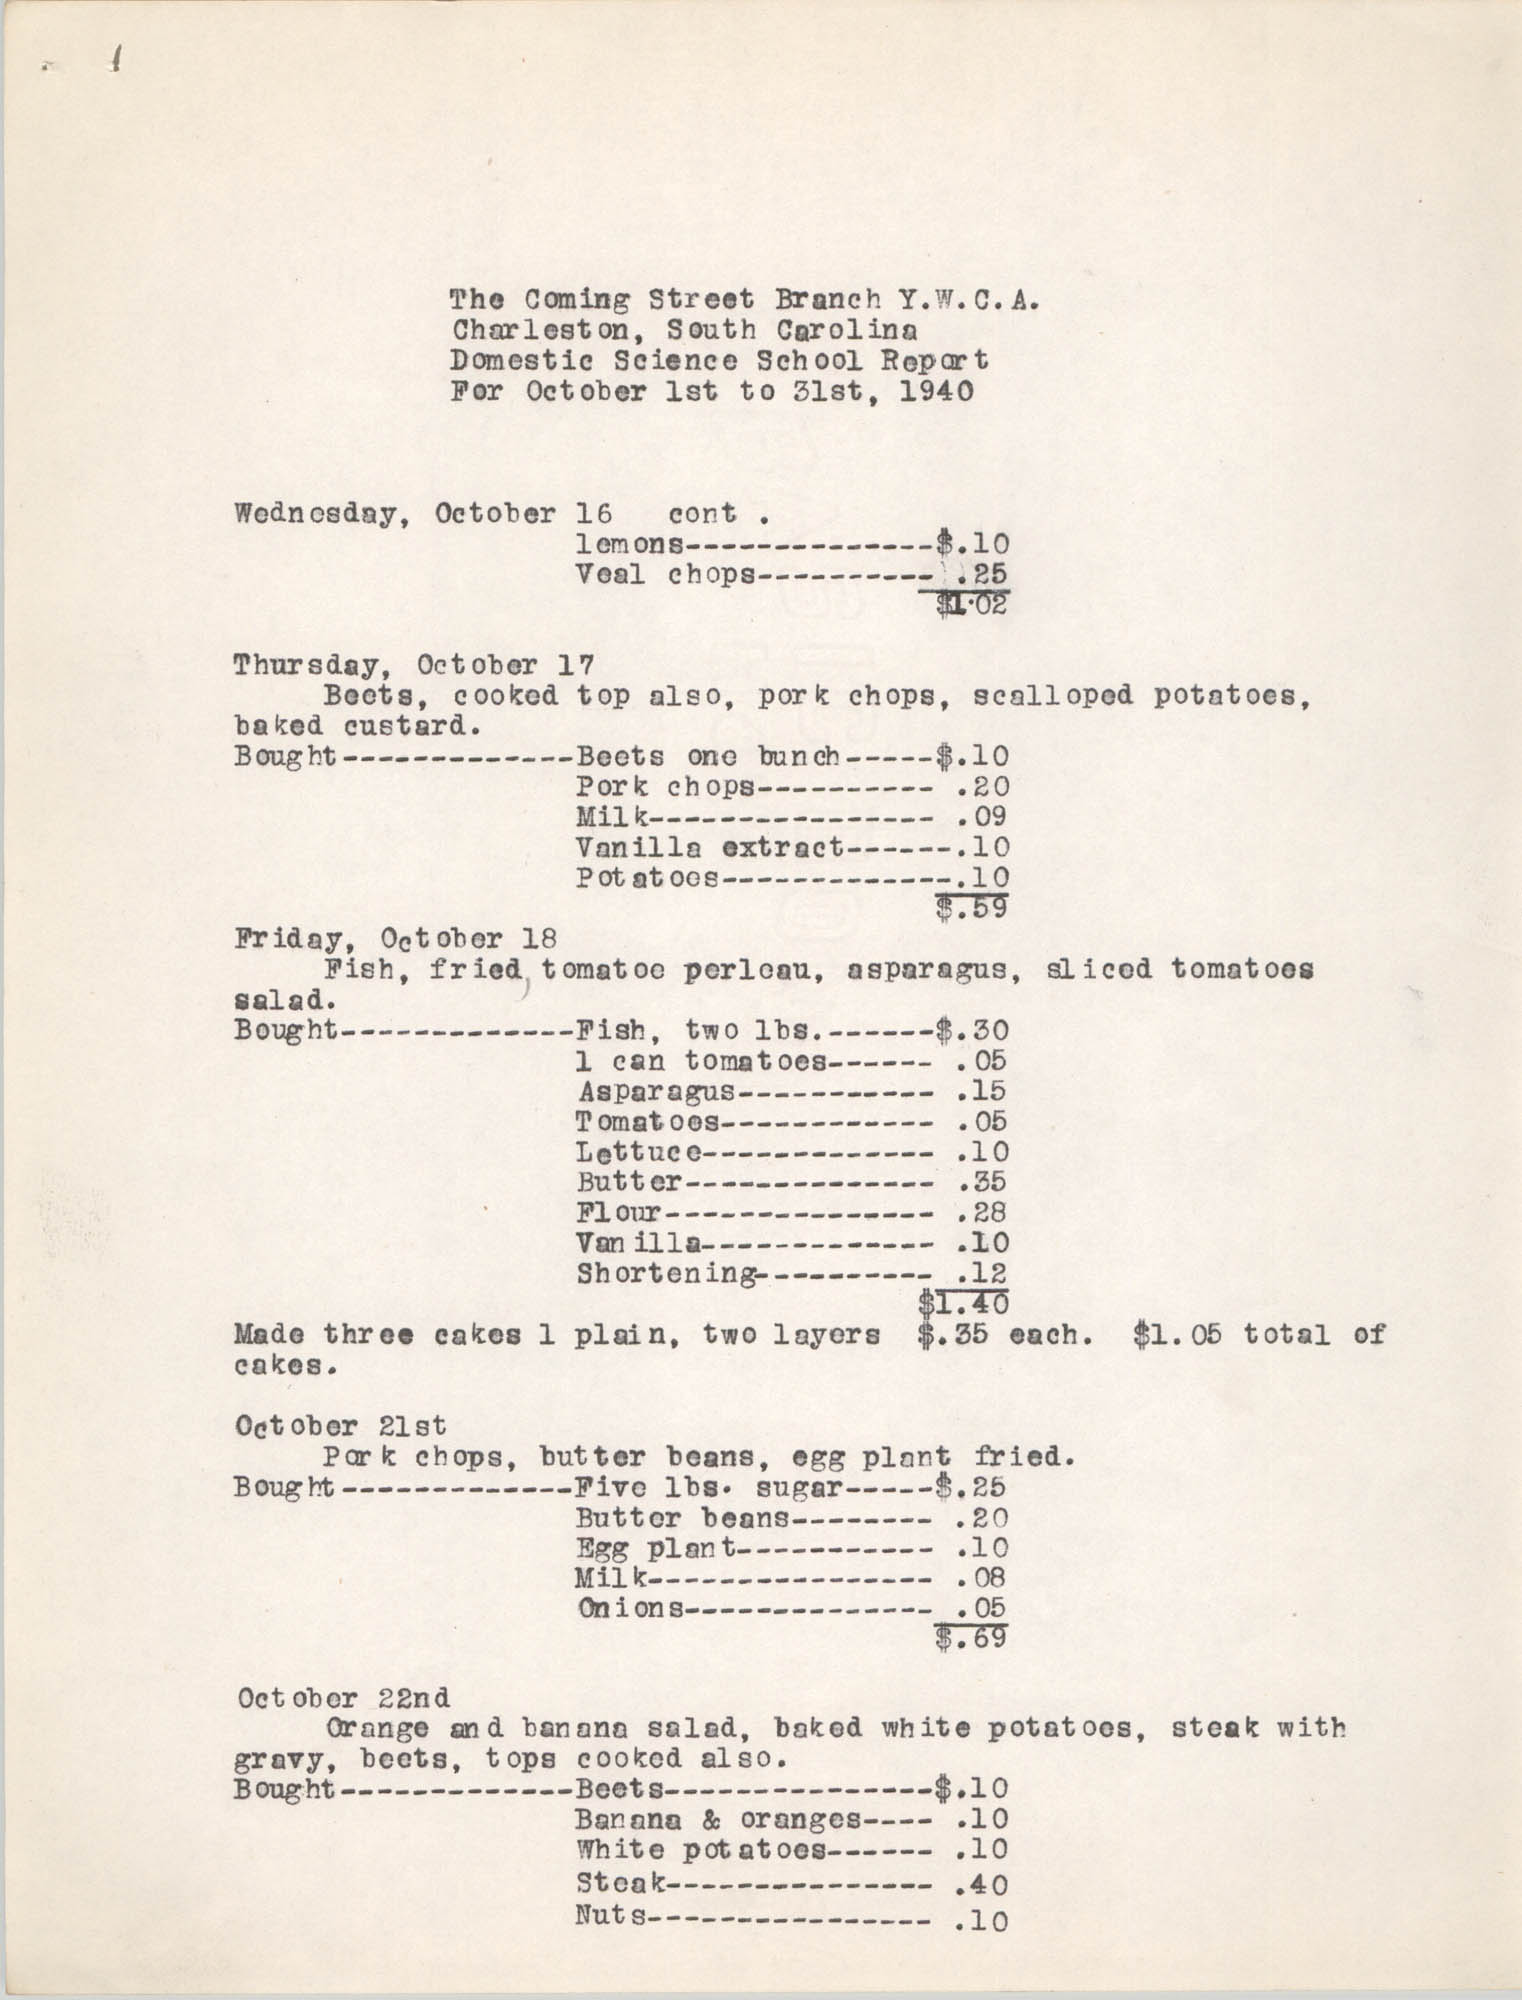 Monthly Report for the Coming Street Y.W.C.A., Domestic Science School, October 1940, Page 4